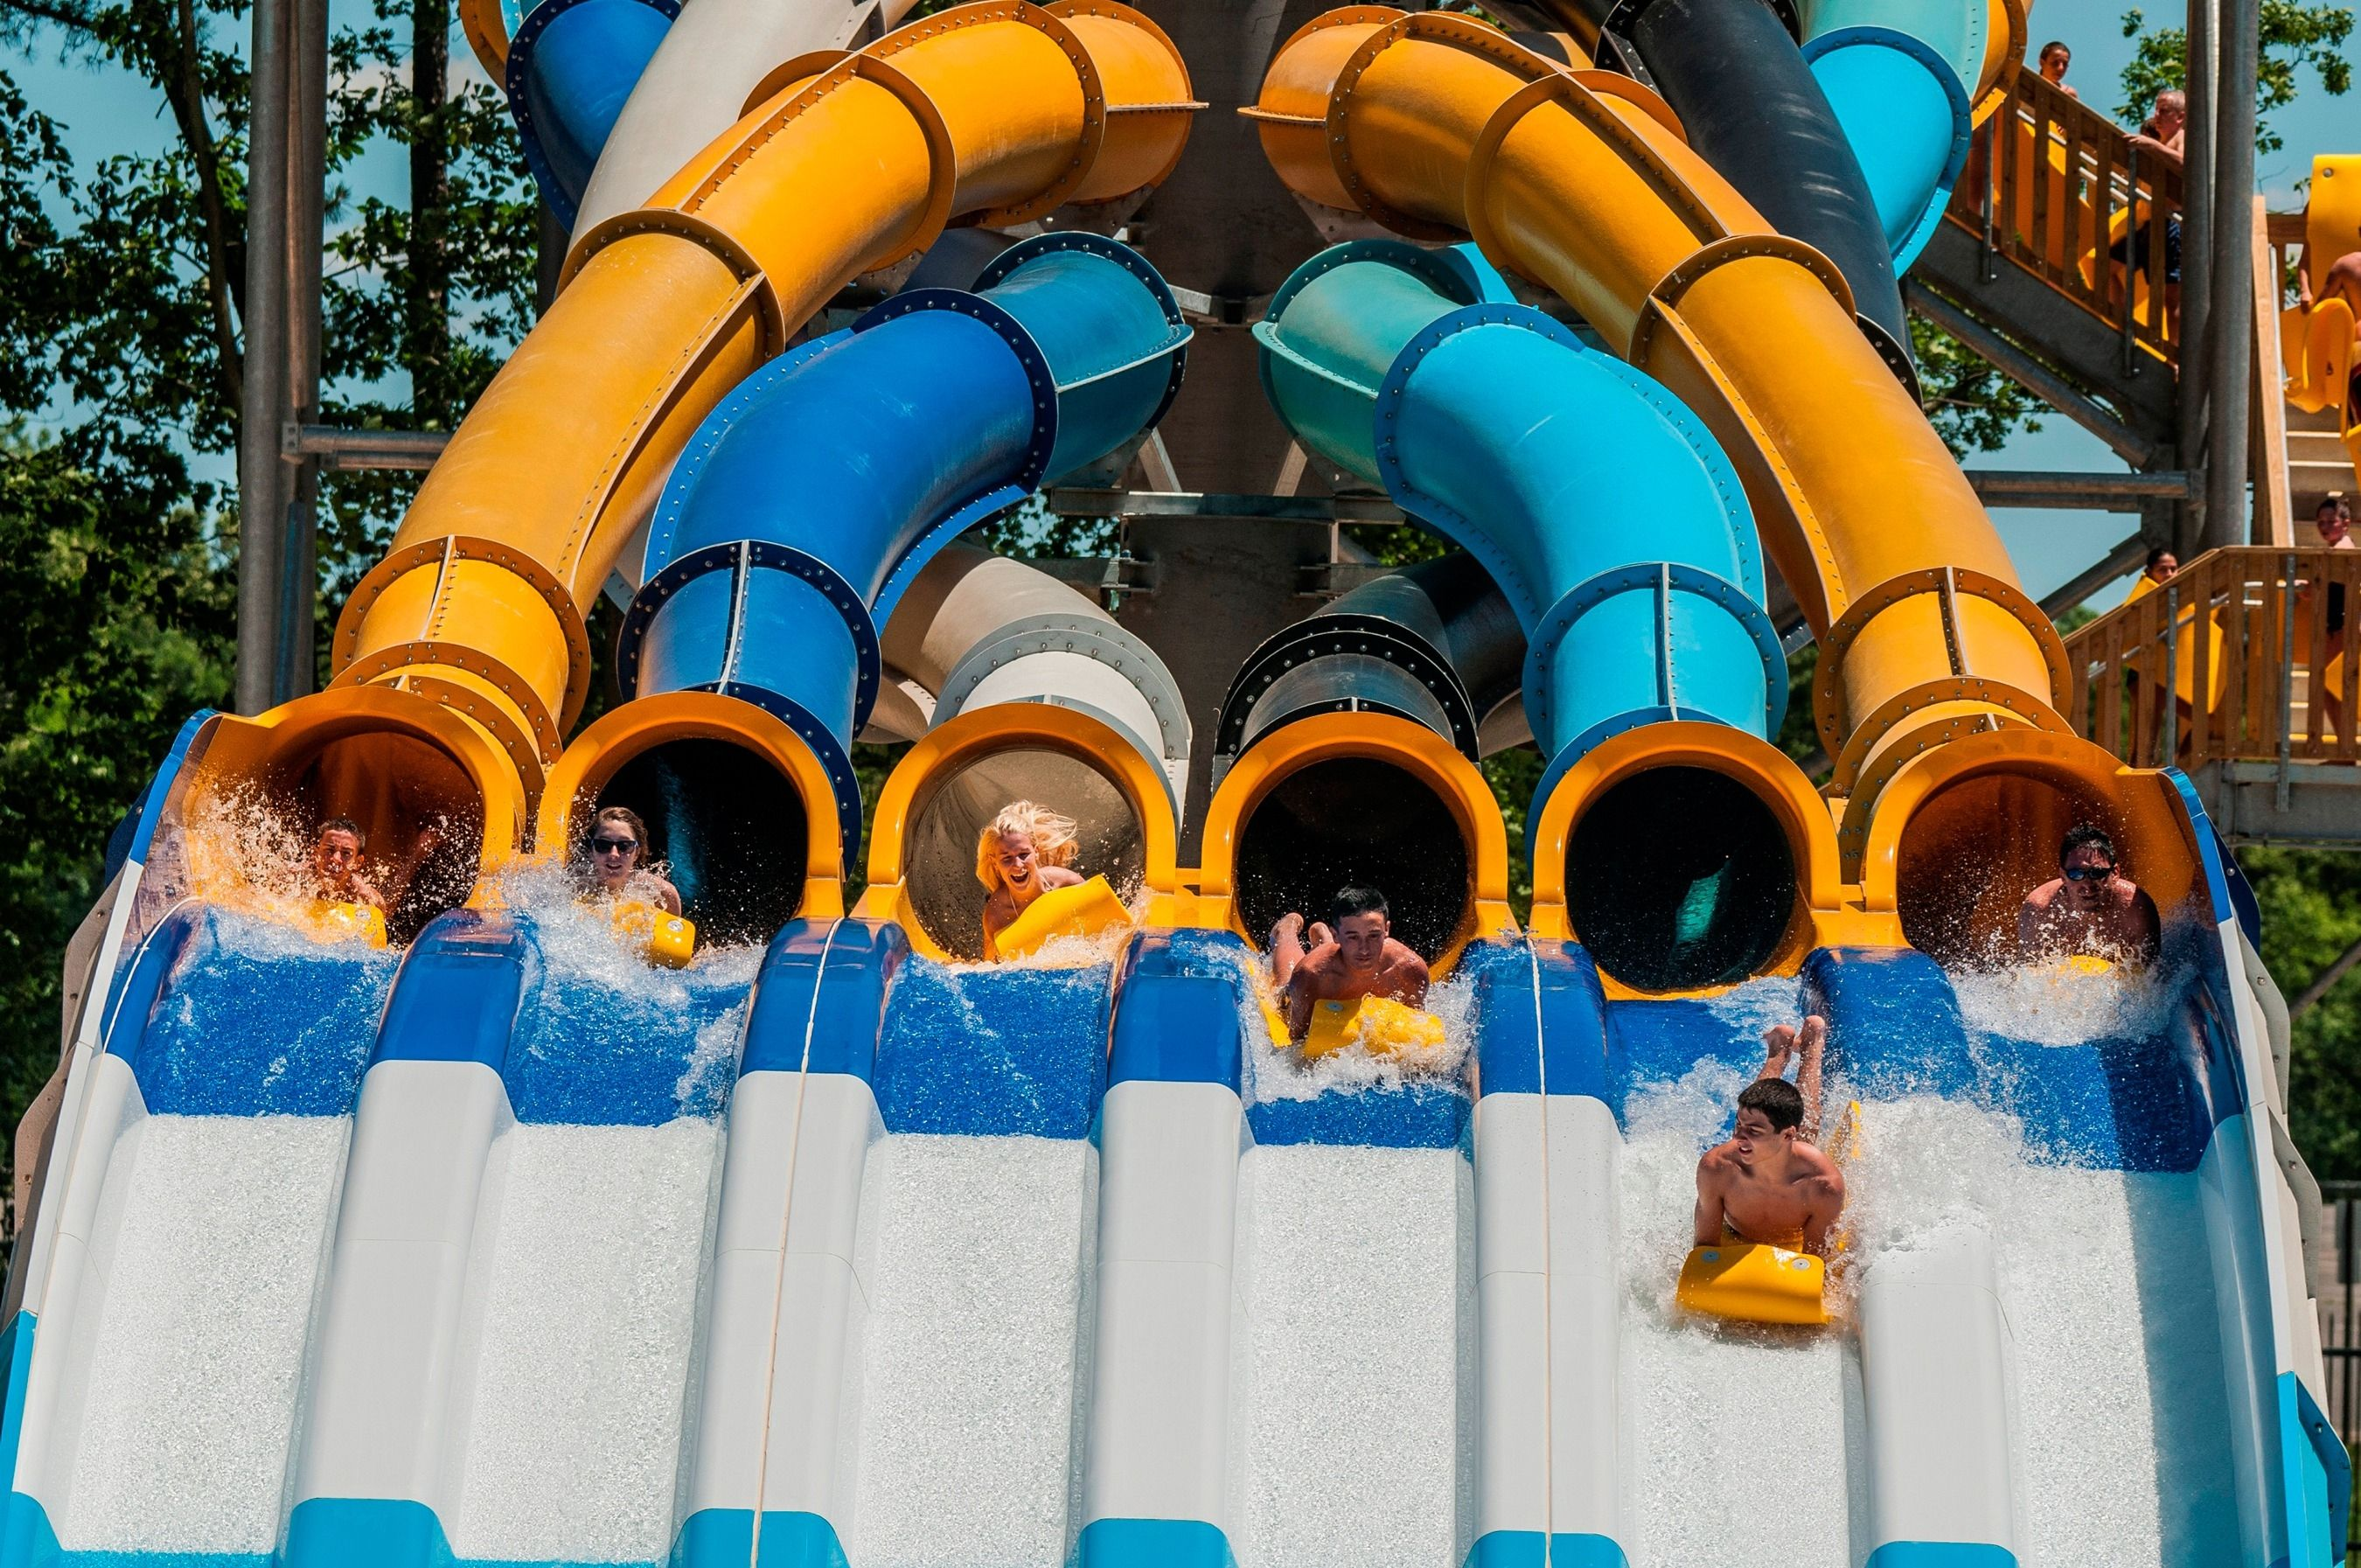 New Jersey Attractions Hurricane Harbor Six Flags Great Adventure Water Park